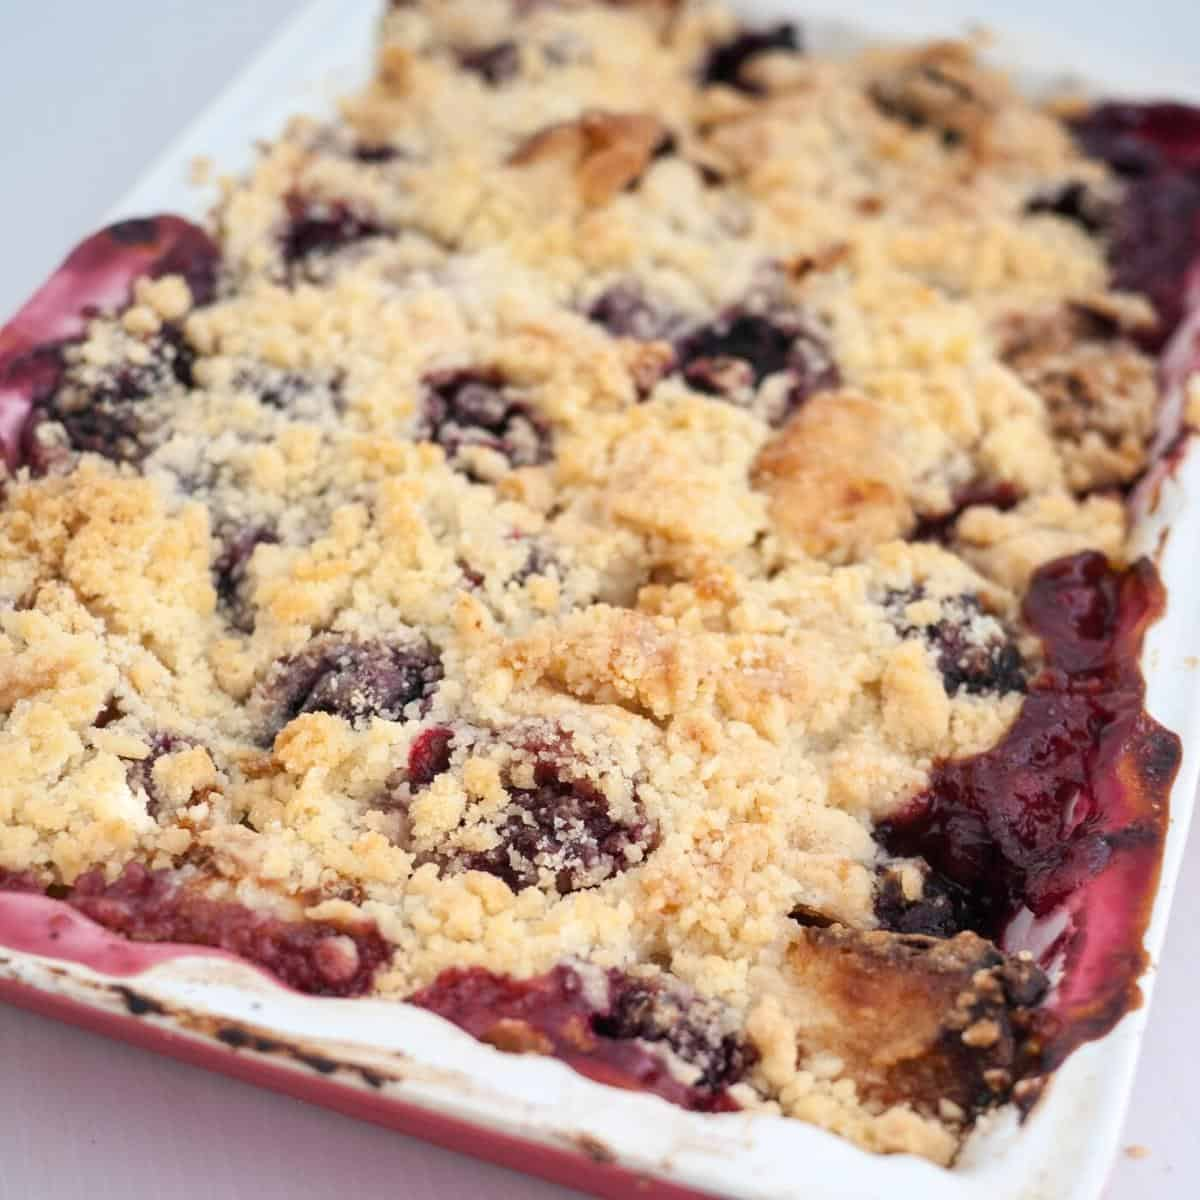 Baking tray with fruit crumble raspberries and peaches.